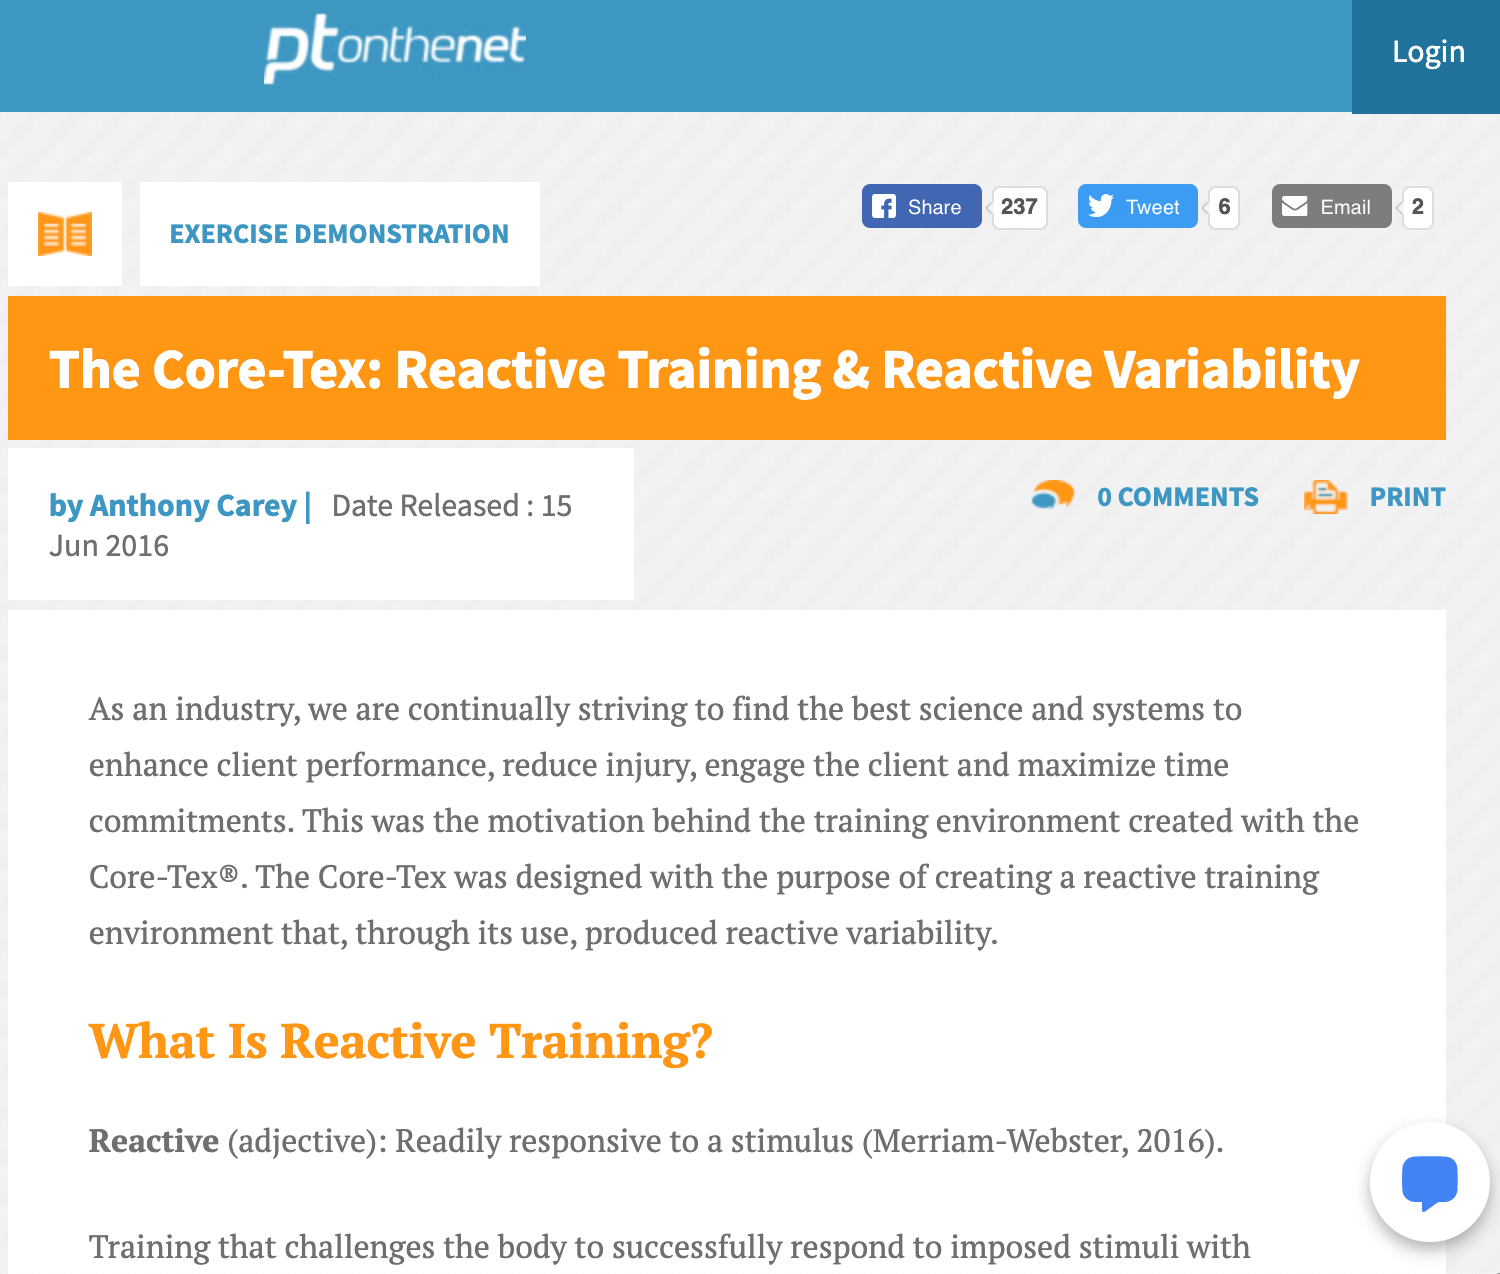 PTONTHENET.COM, JUNE 15, 2016: The Core-Tex: Reactive Training & Reactive Variability